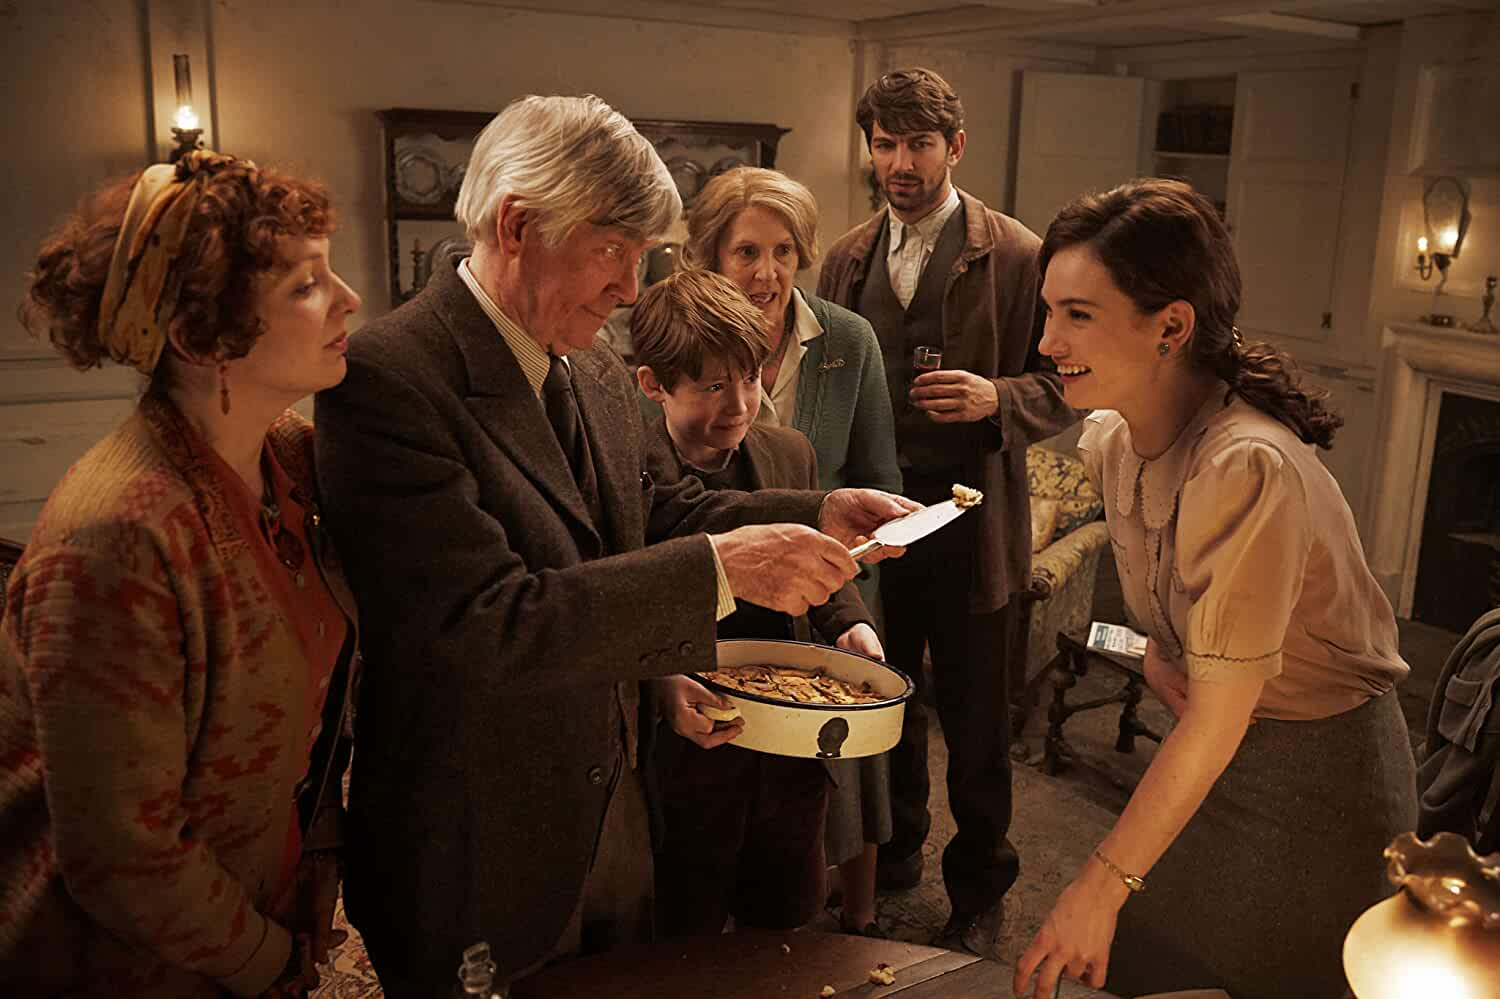 Tom Courtenay, Michiel Huisman, Penelope Wilton, Katherine Parkinson, Lily James, and Kit Connor in The Guernsey Literary and Potato Peel Pie Society (2018)